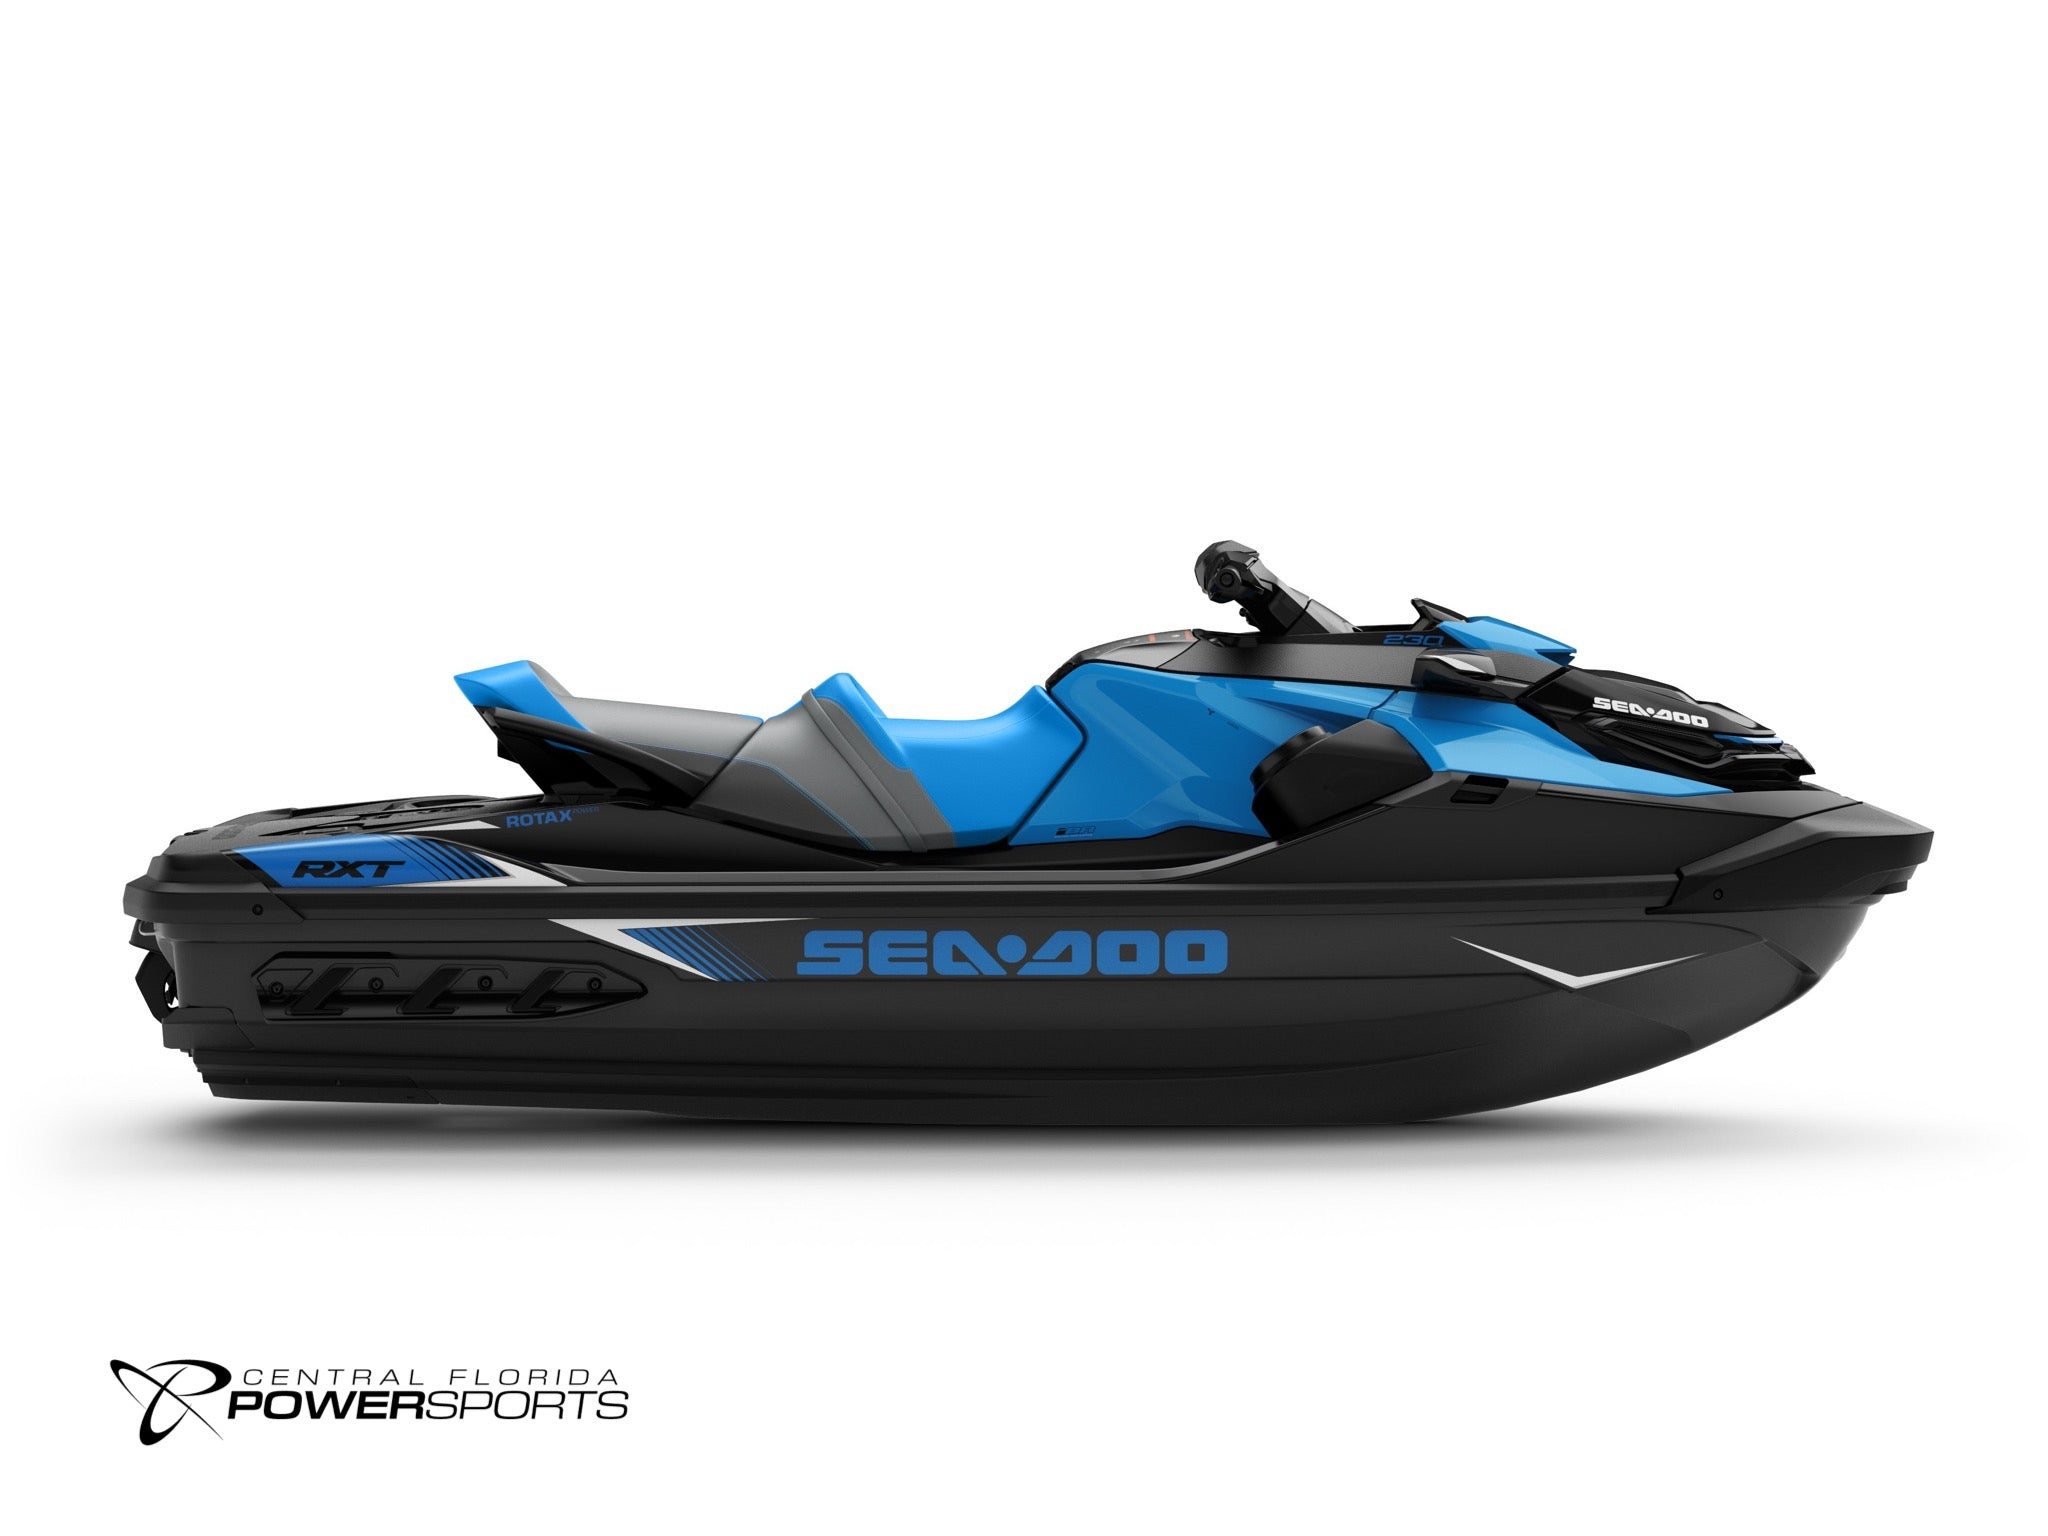 Seadoo Prices >> Lowest Prices on 2018 Sea-Doo RXT-260 Racing PWC For Sale Kissimmee - Central Florida PowerSports